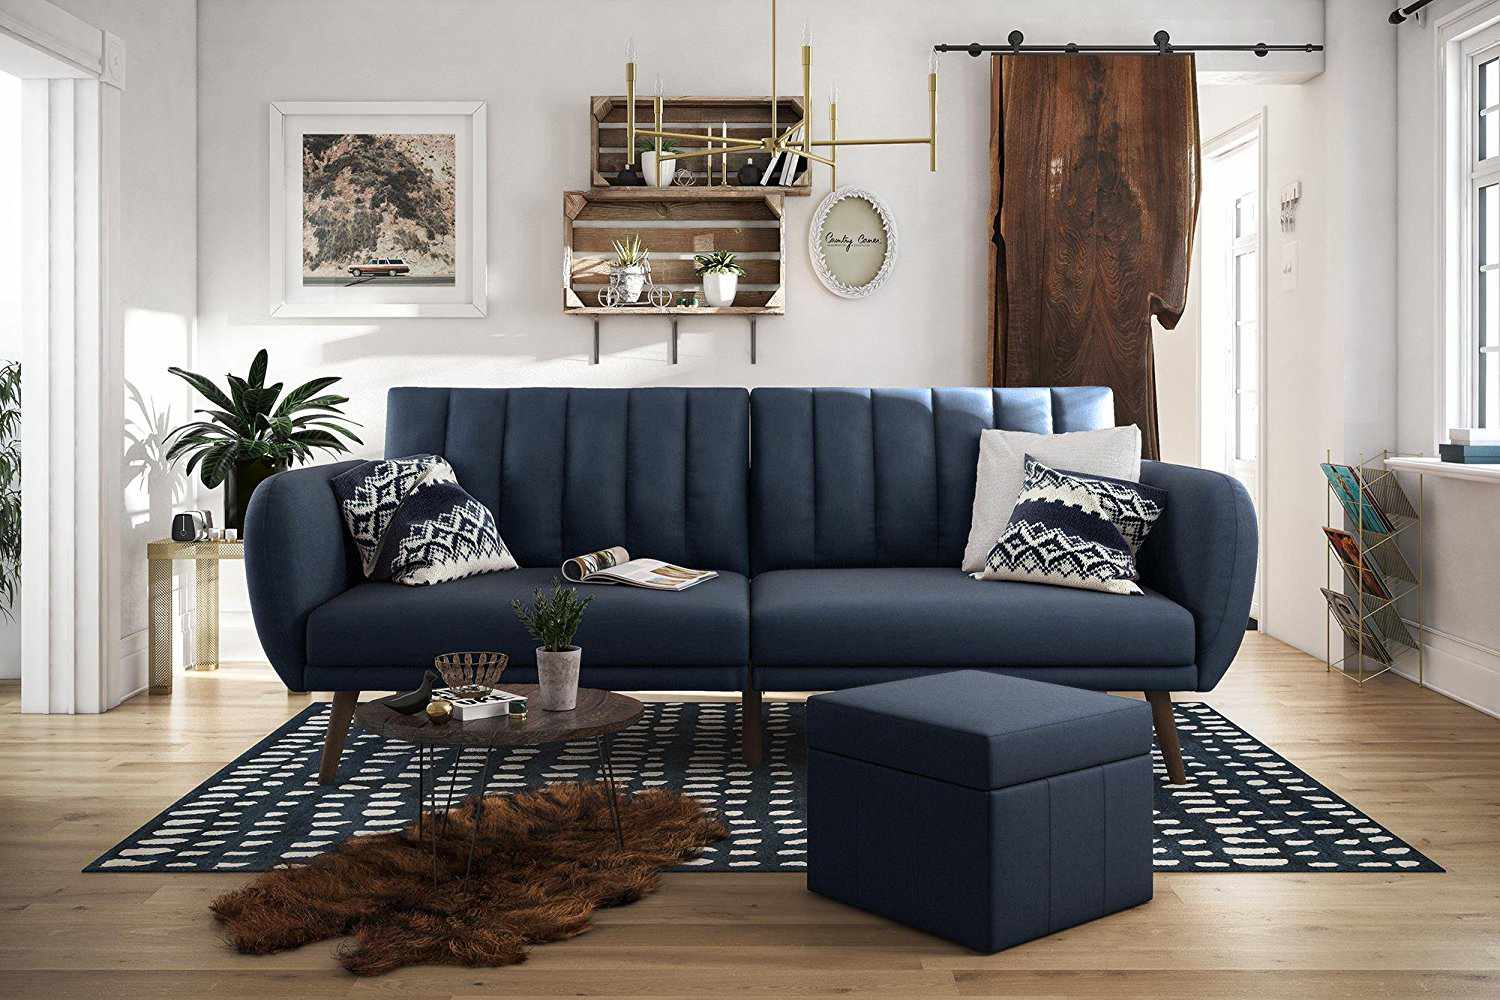 The Best Places to Buy Budget Furniture in 2020